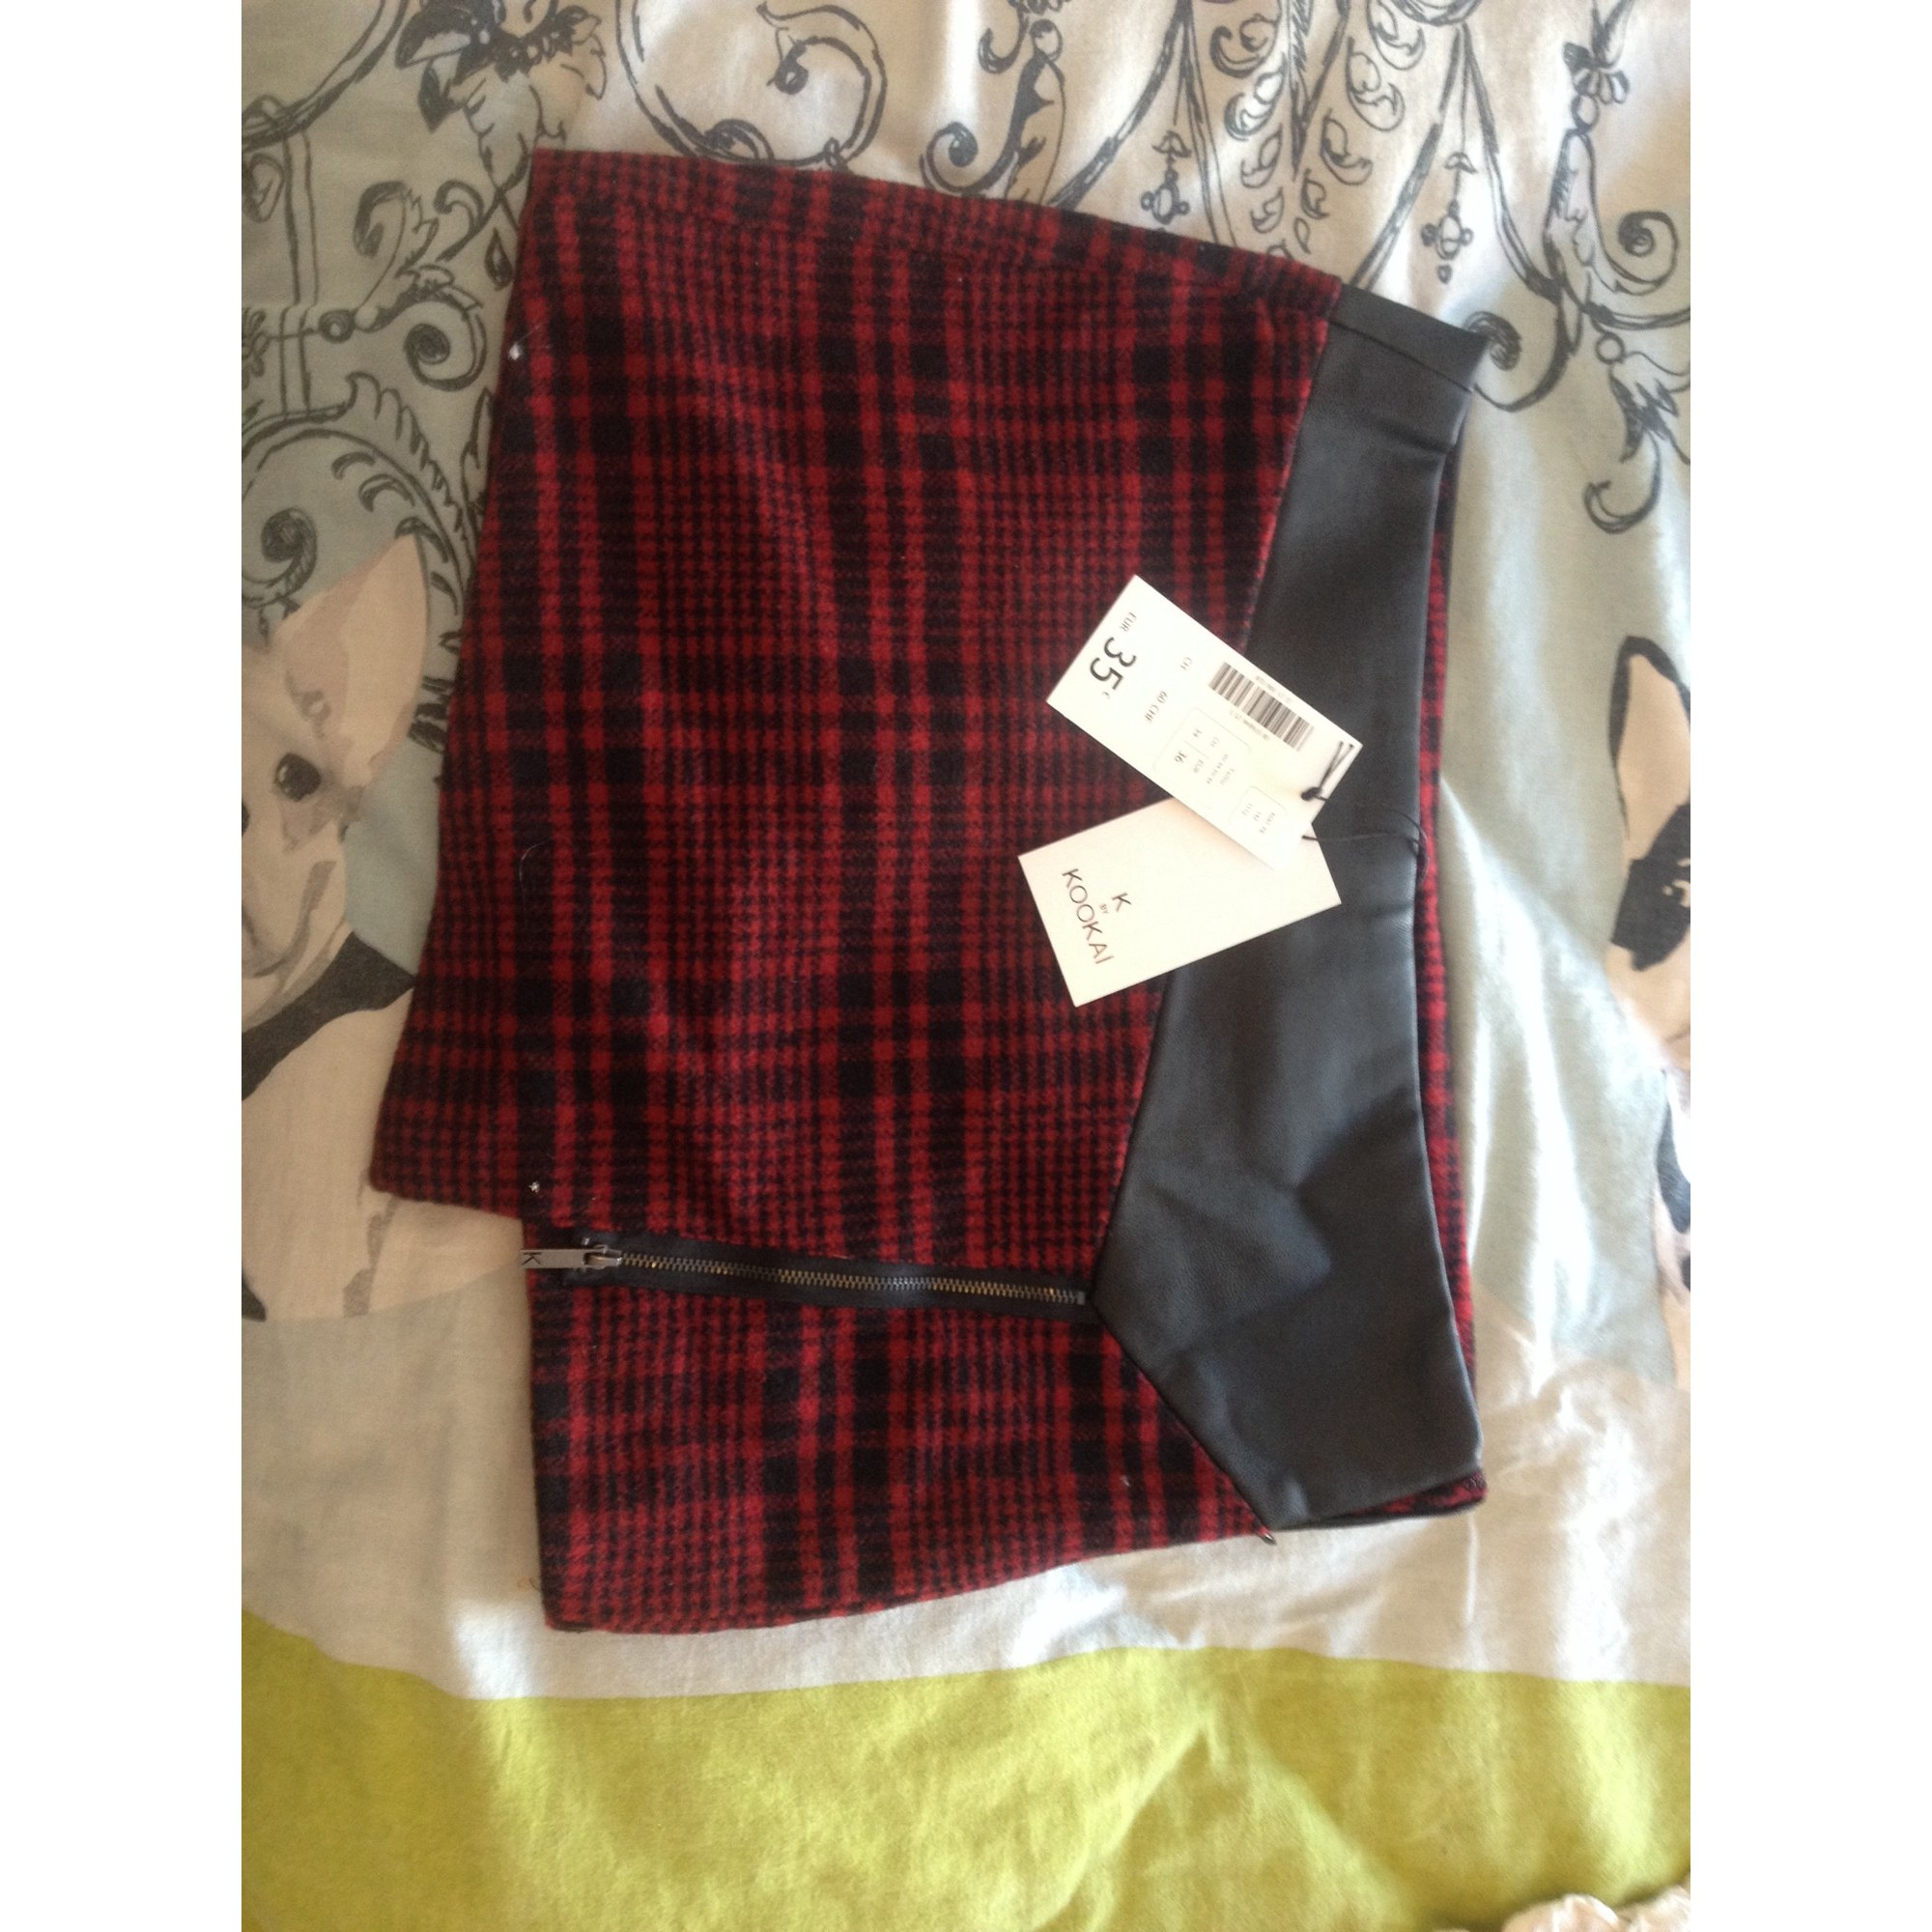 294db45ab9 Mini Skirt KOOKAI 36 (S